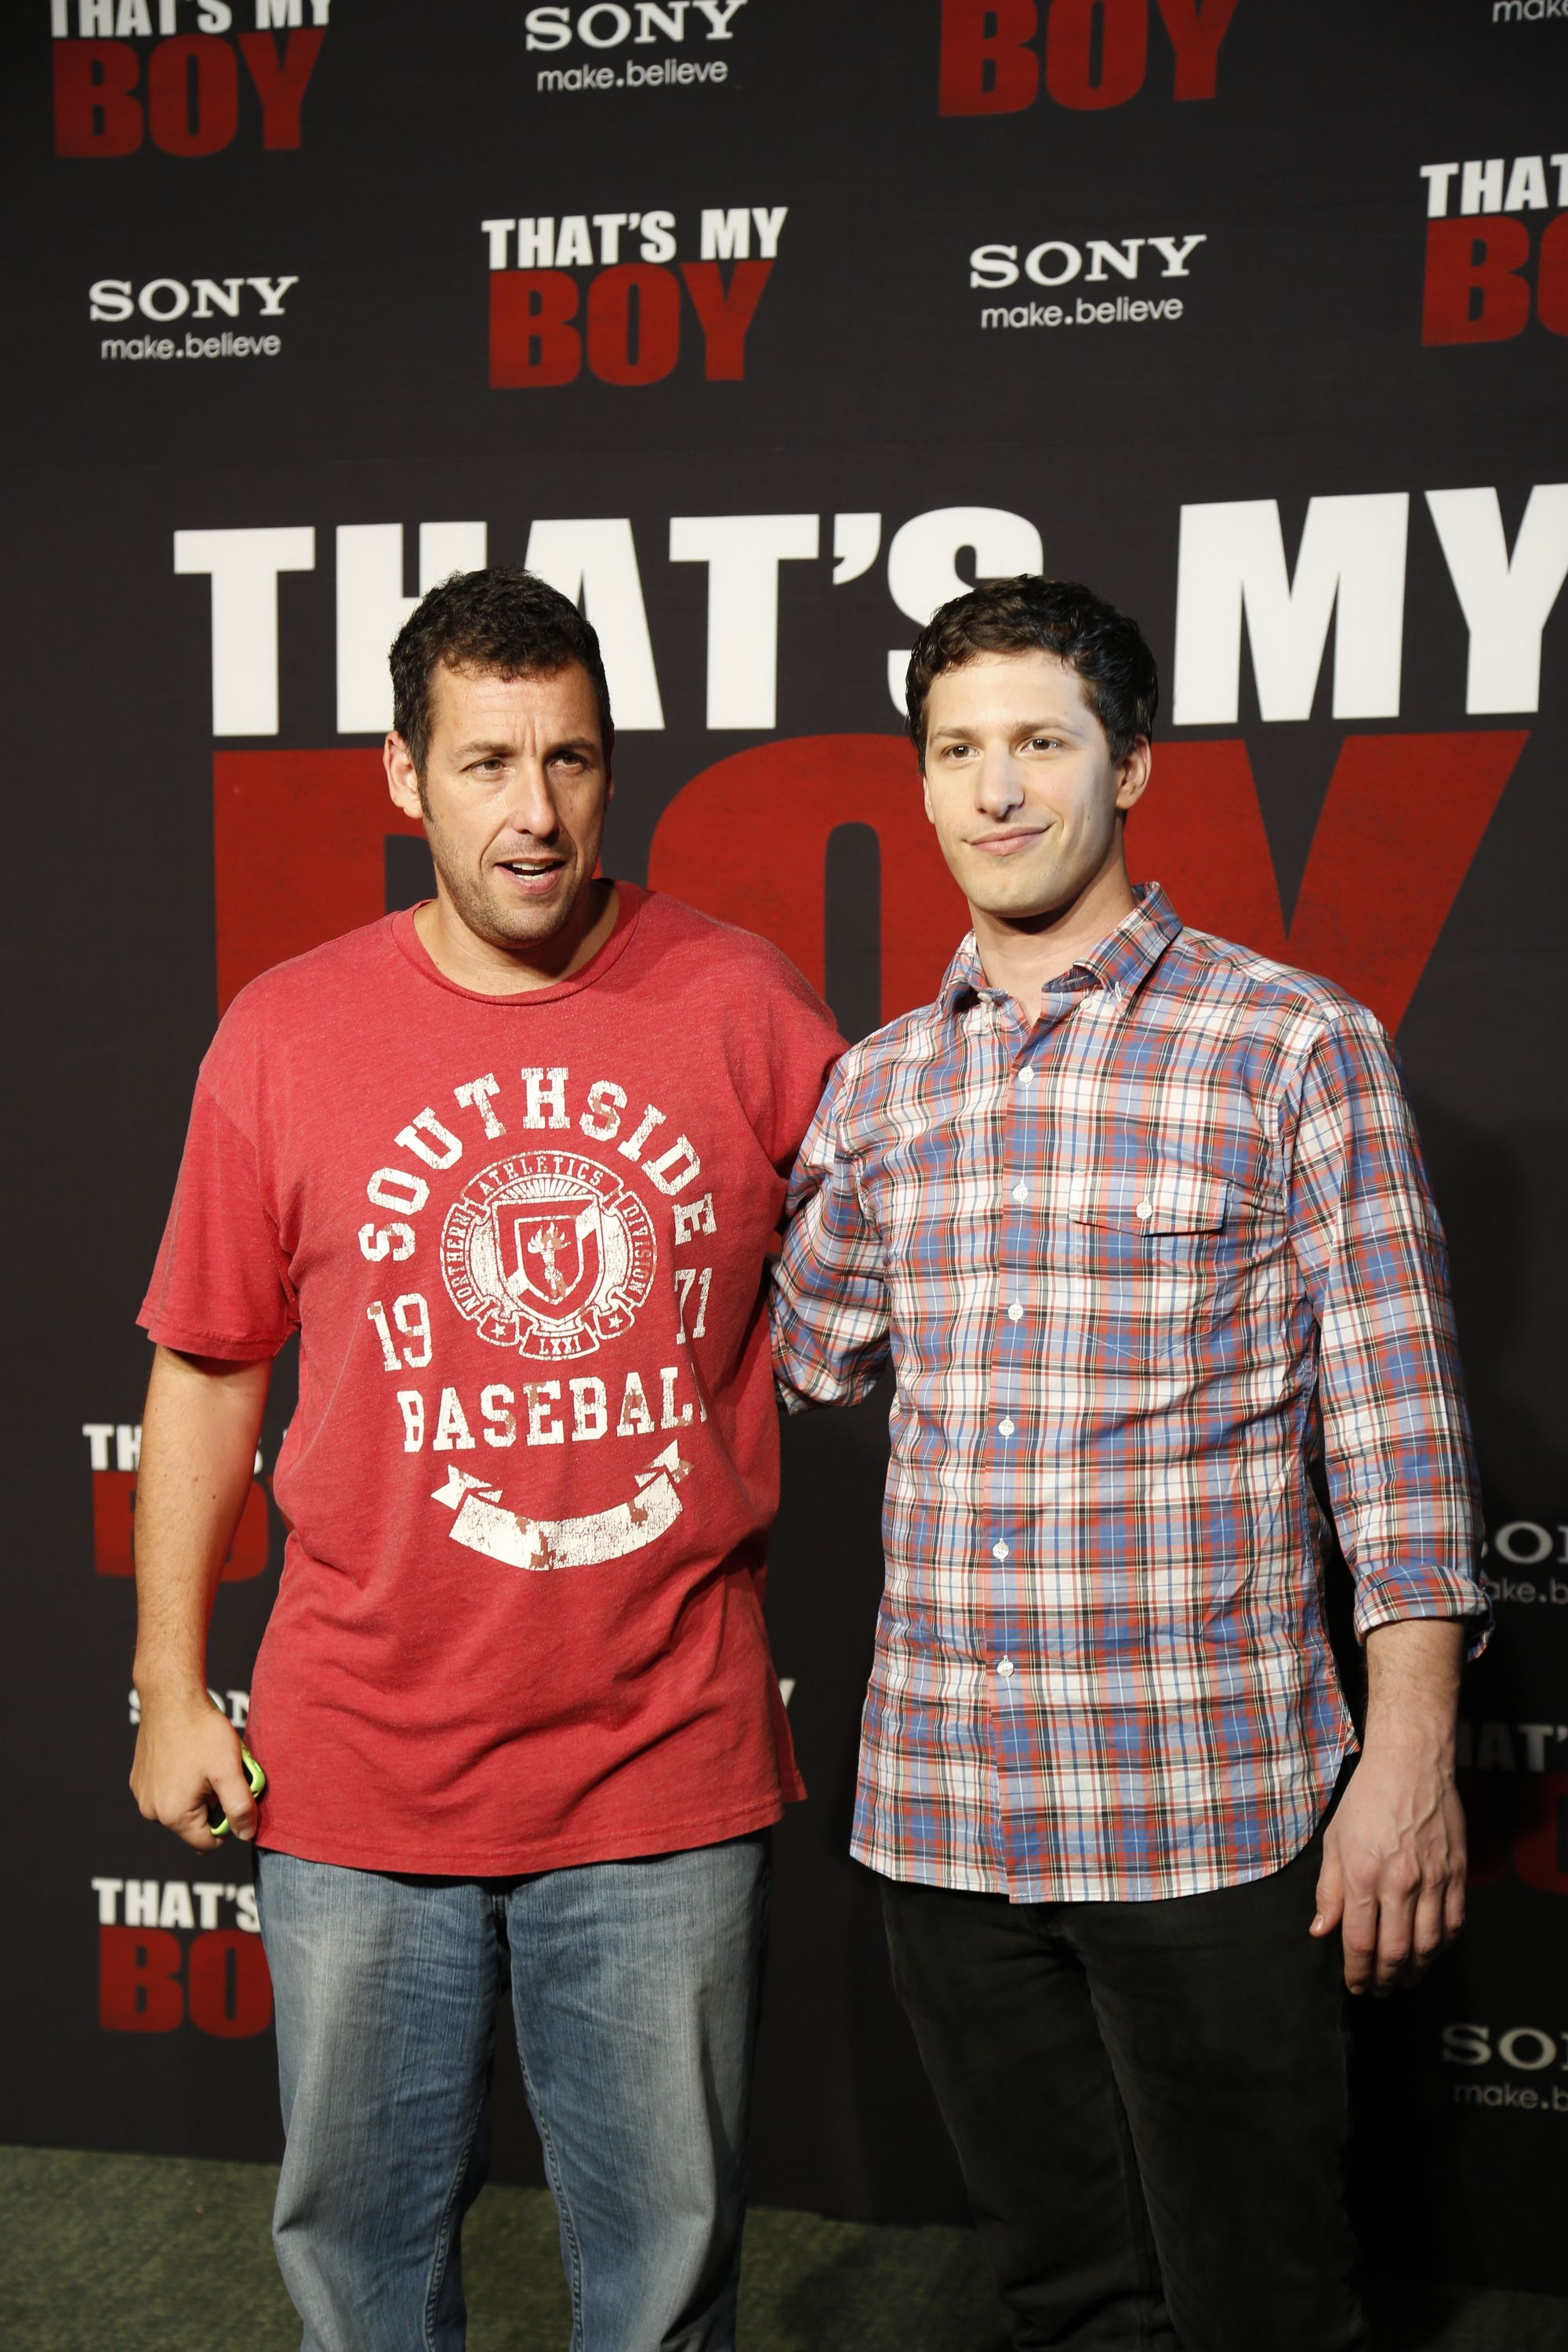 Adam Sandler and Andy Sanberg, stars of That's my boy